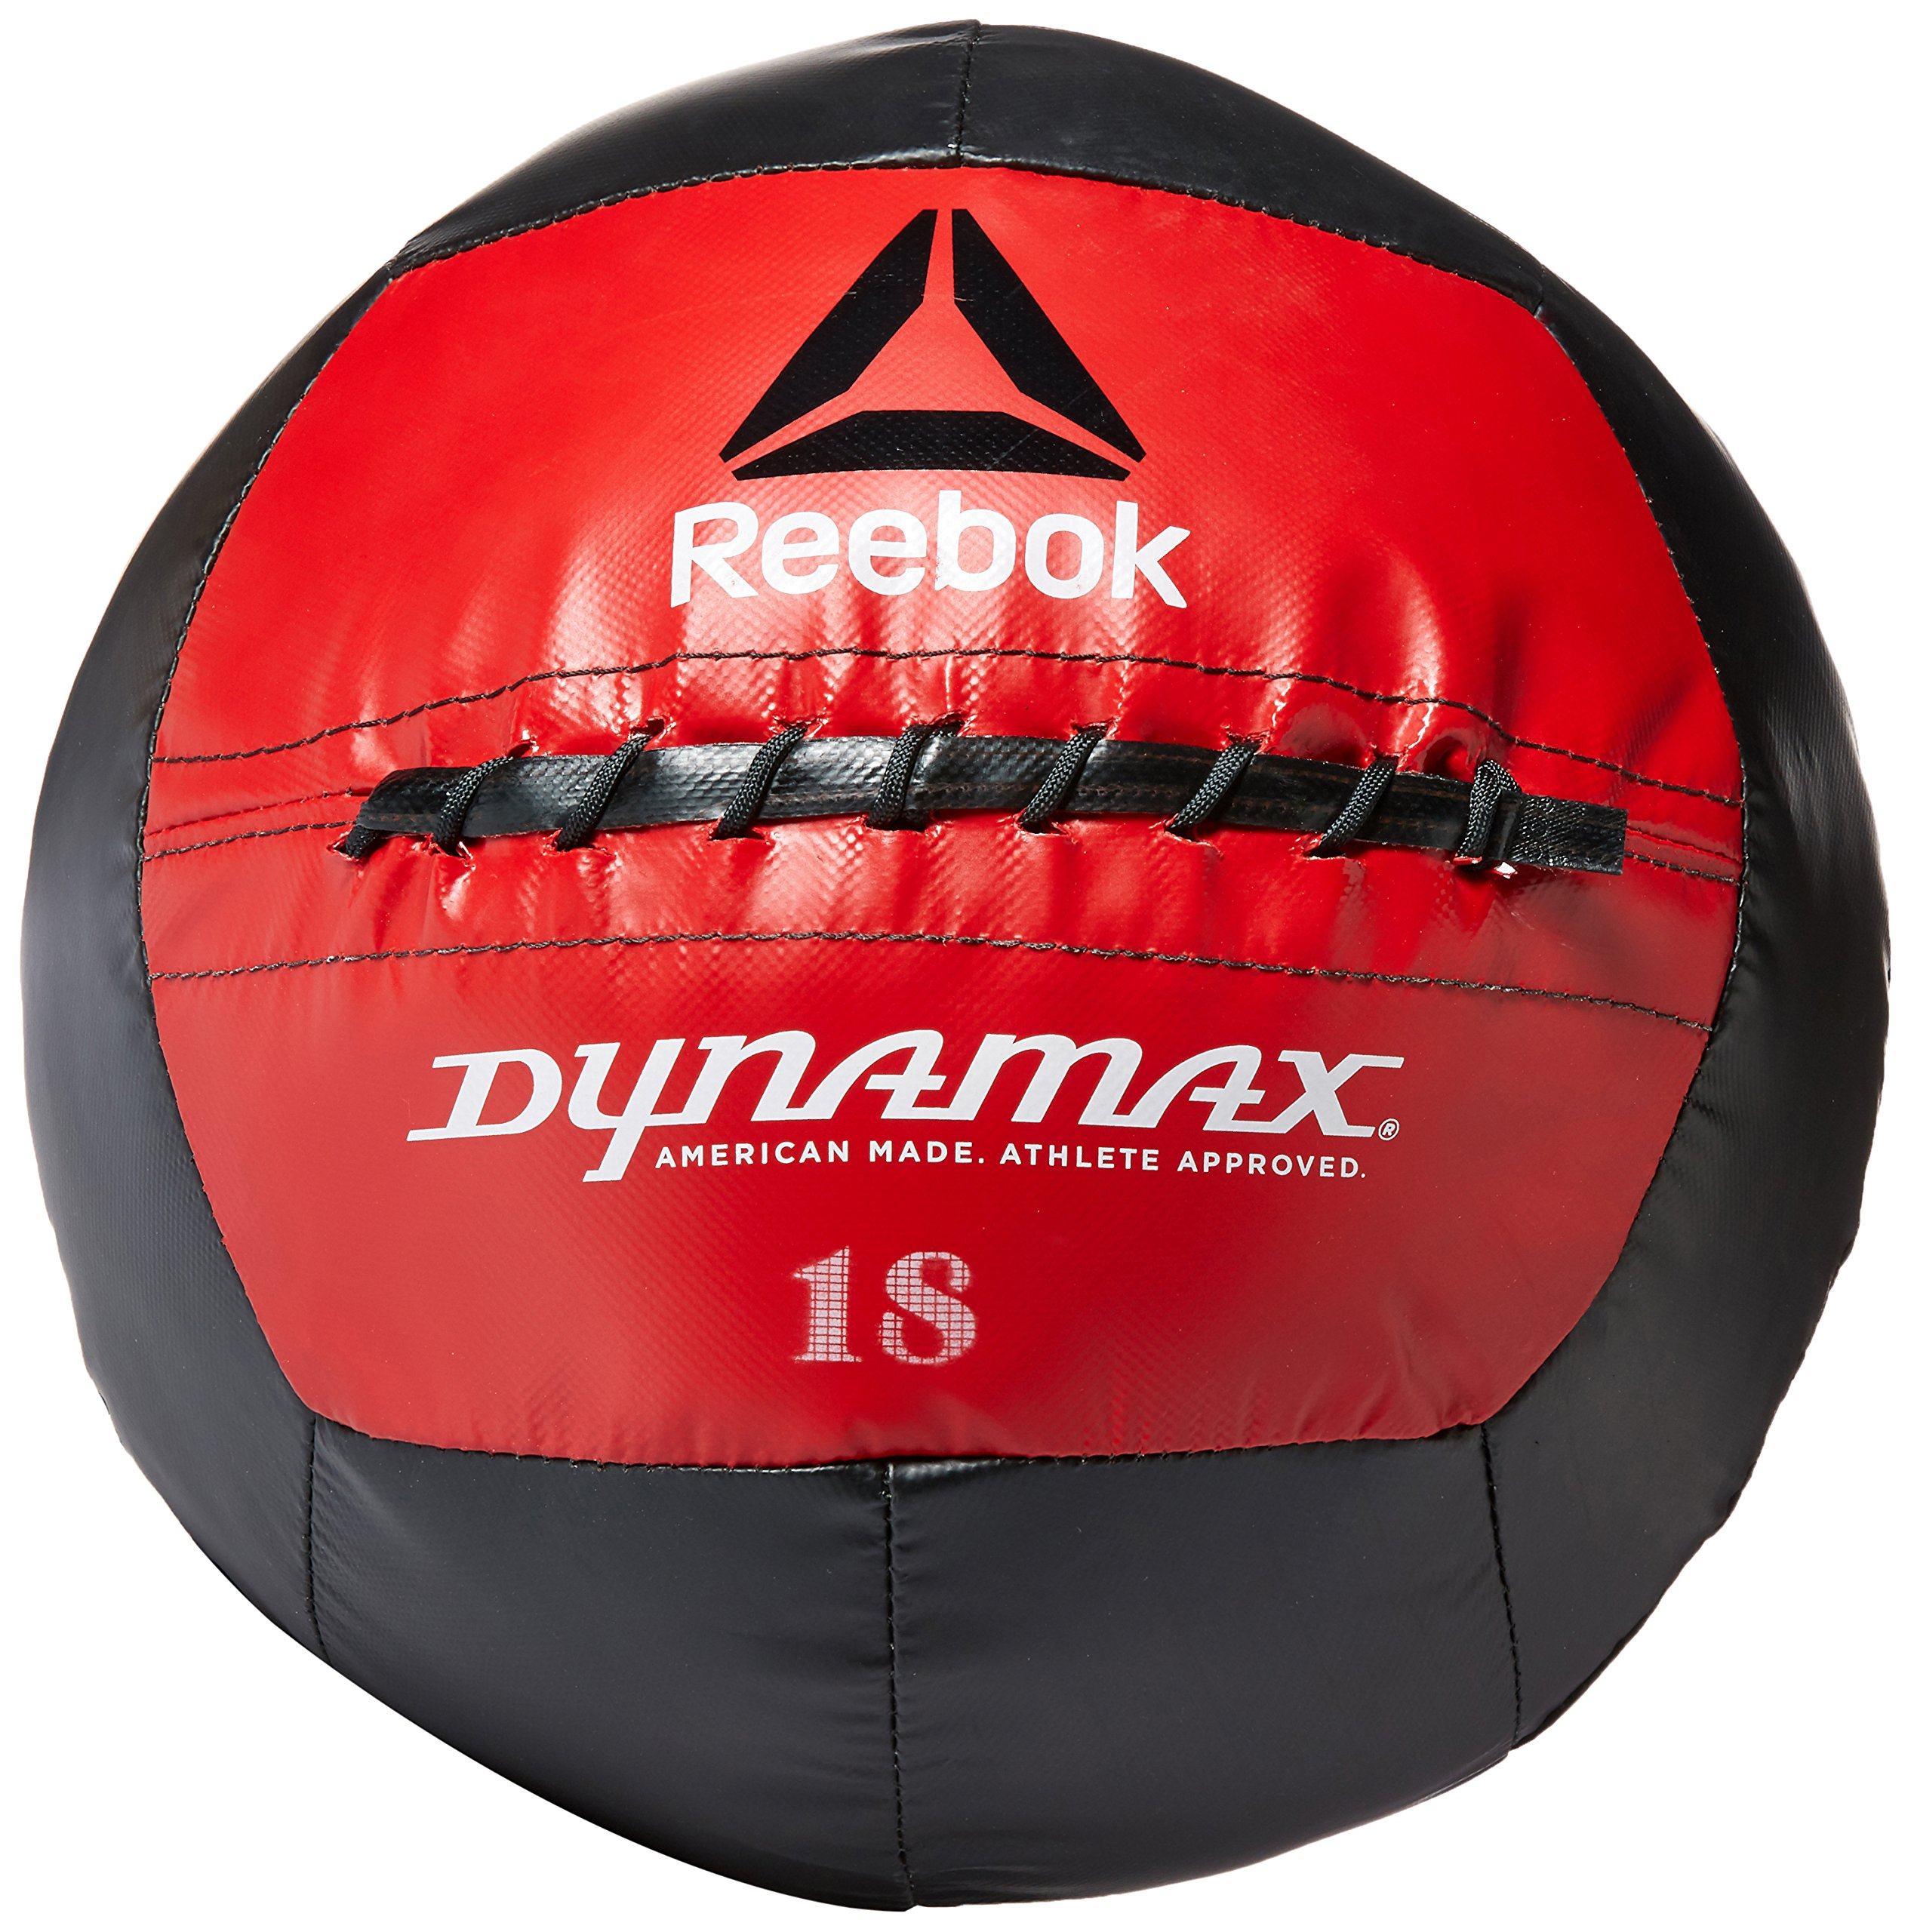 Reebok Soft-Shell Medicine Ball by Dynamax, 18 lbs by Reebok